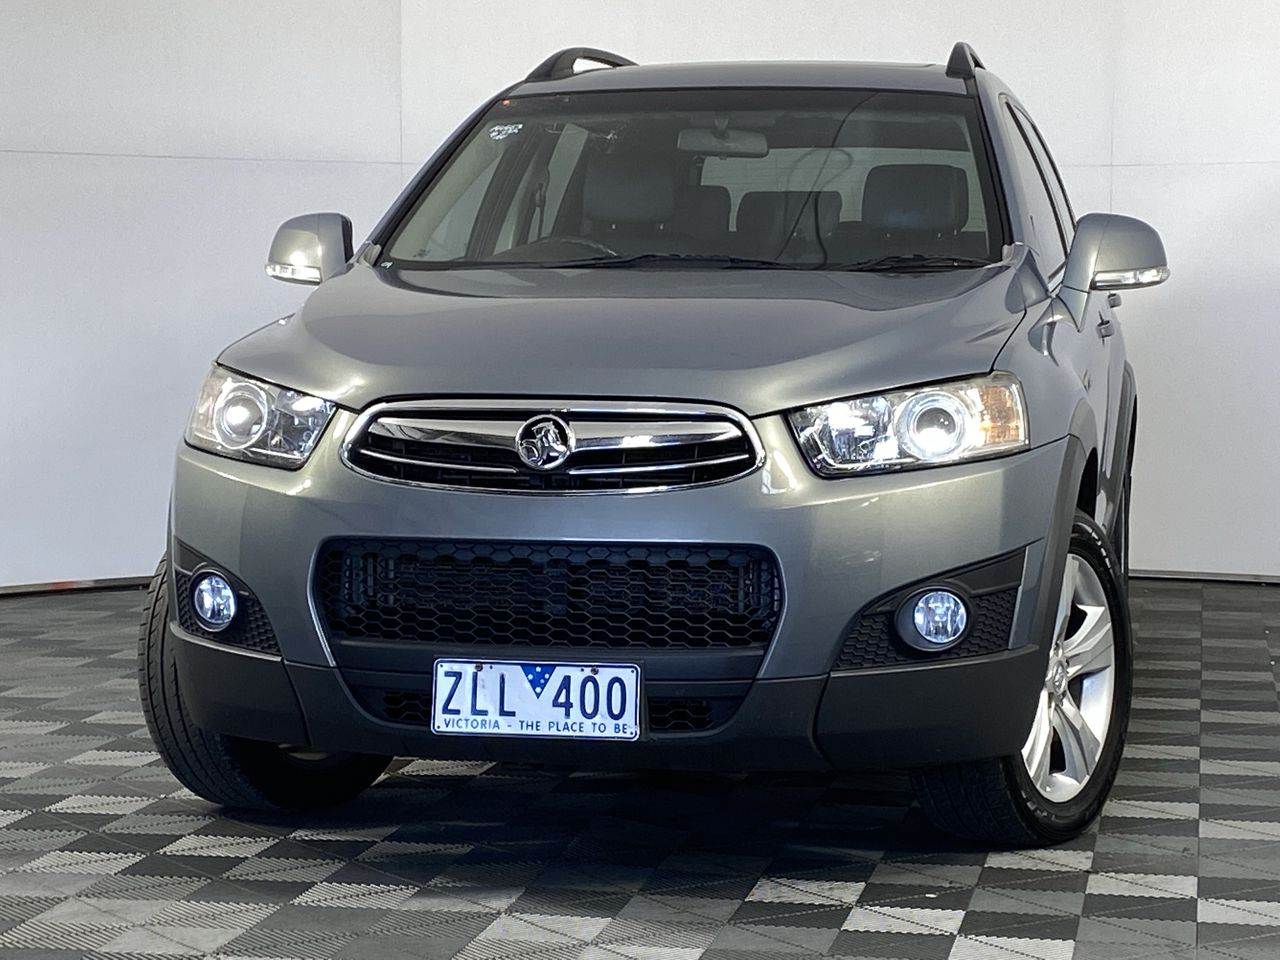 2012 Holden Captiva 7 CX AWD CG II Turbo Diesel Automatic 7 Seats Wagon